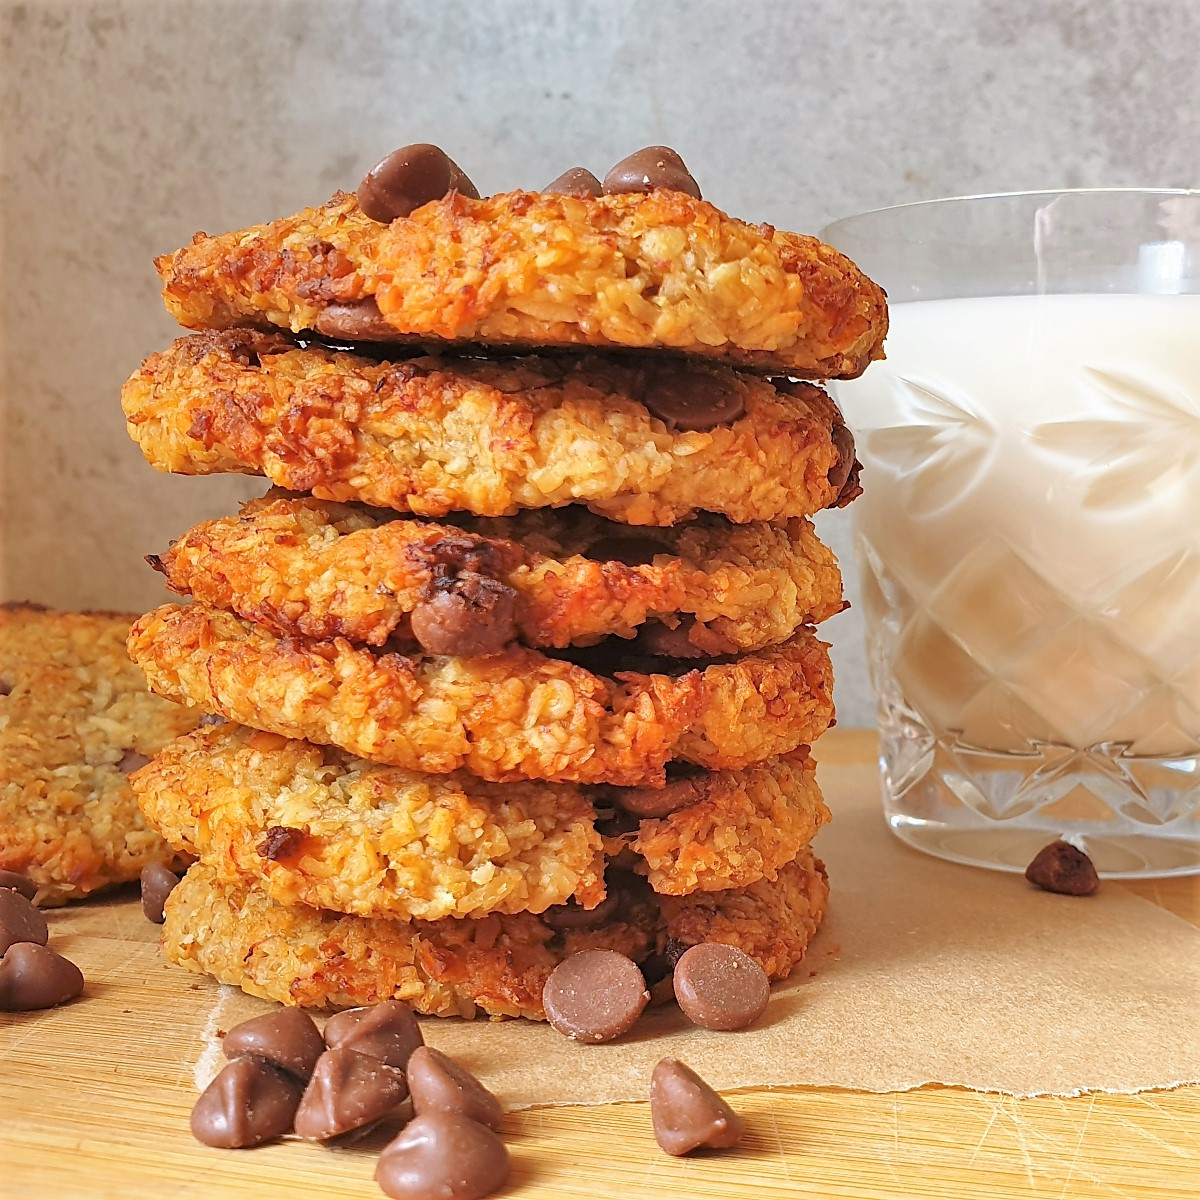 A pile of banana oat cookies with a glass of milk.